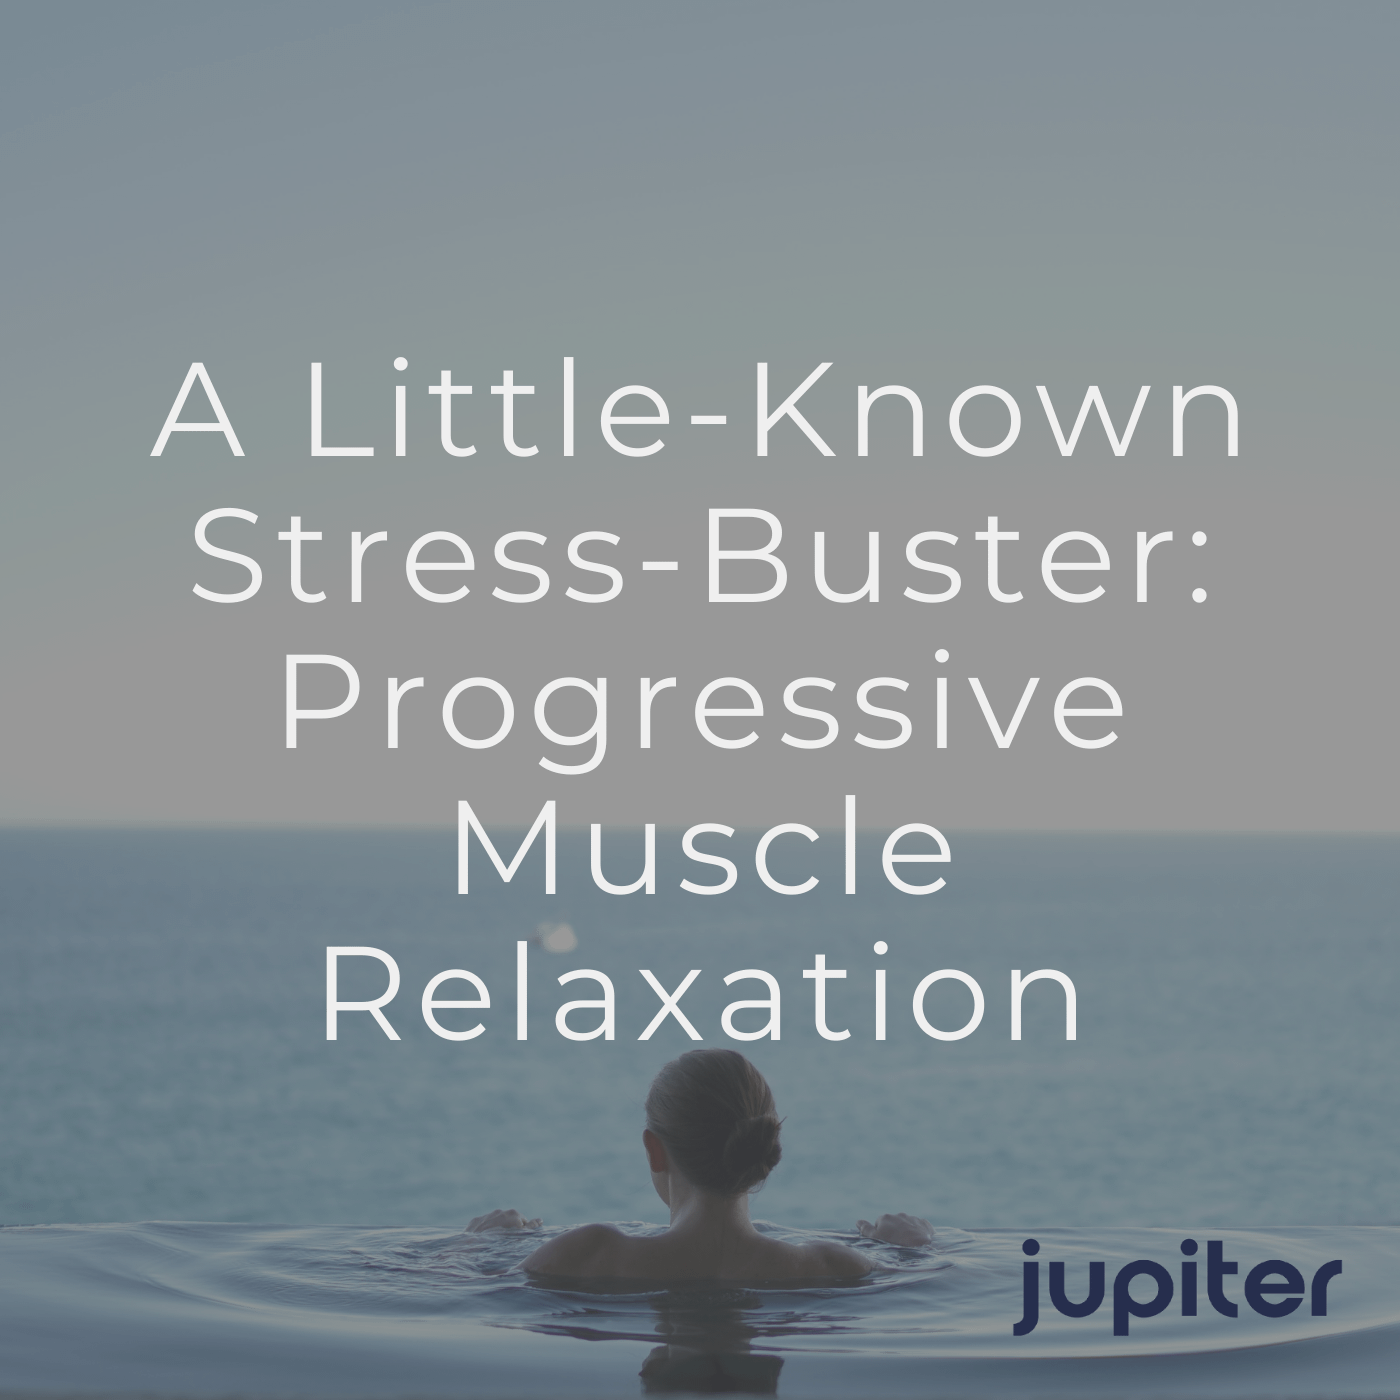 A Little-Known Stress-Buster: Progressive Muscle Relaxation